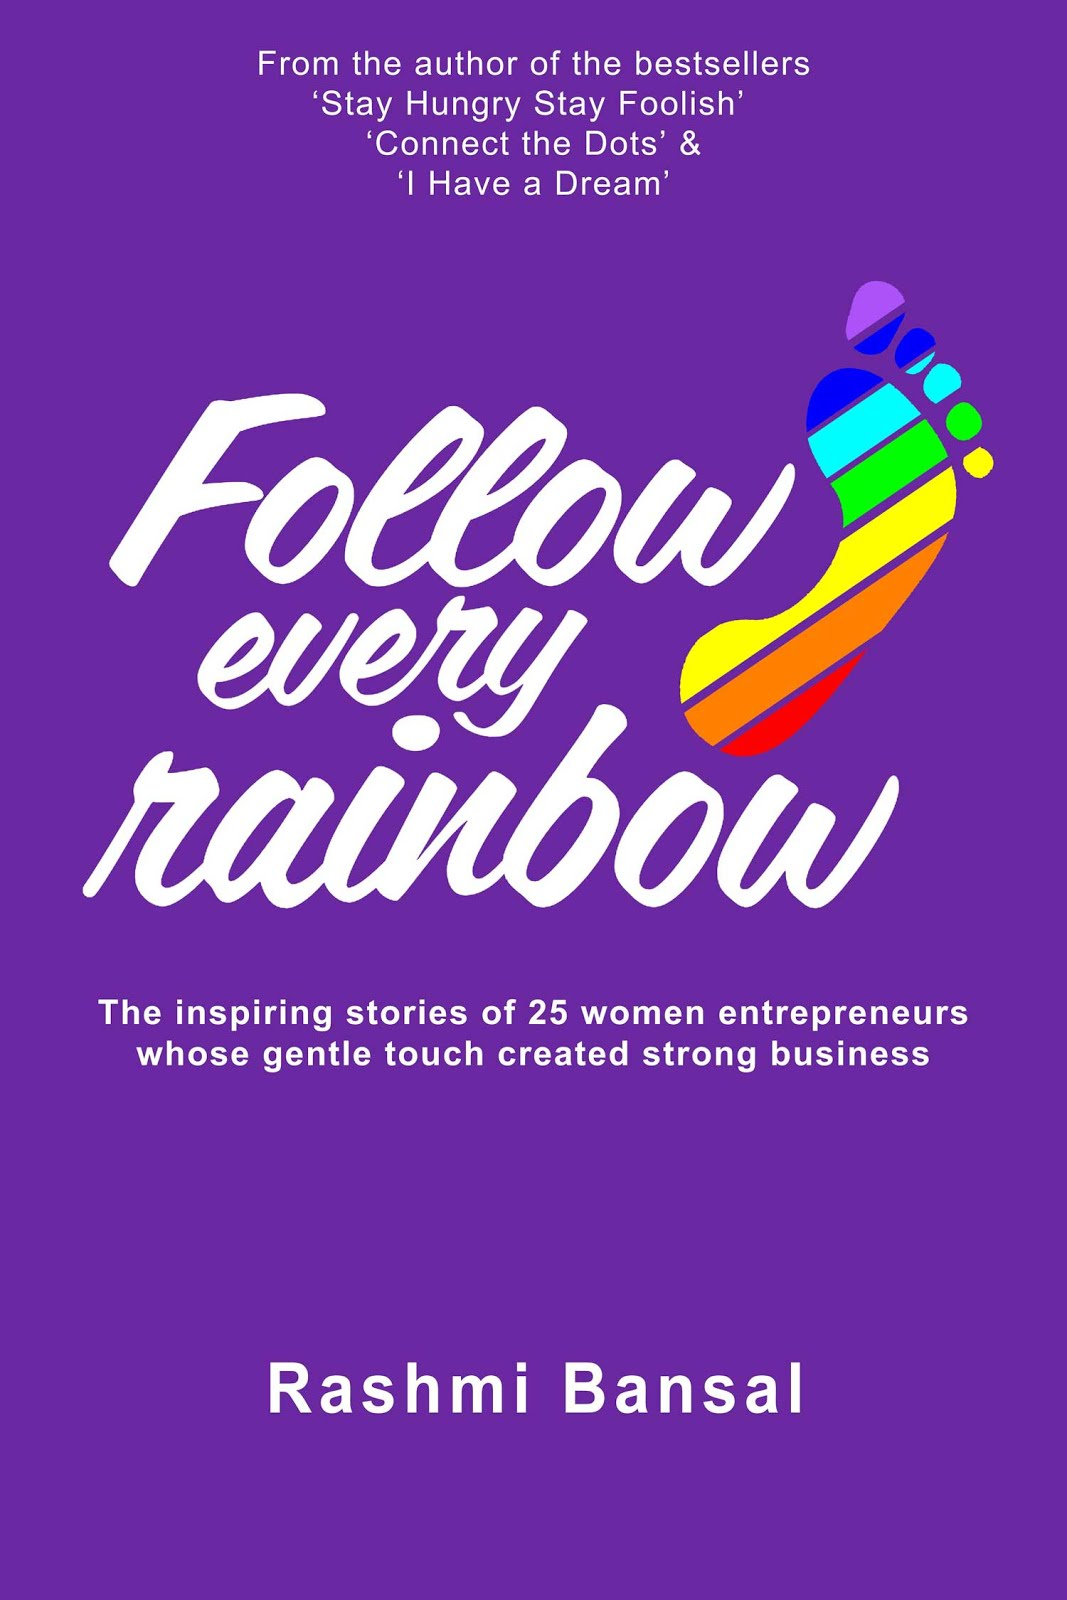 follow-every-rainbow by rashmi bansal